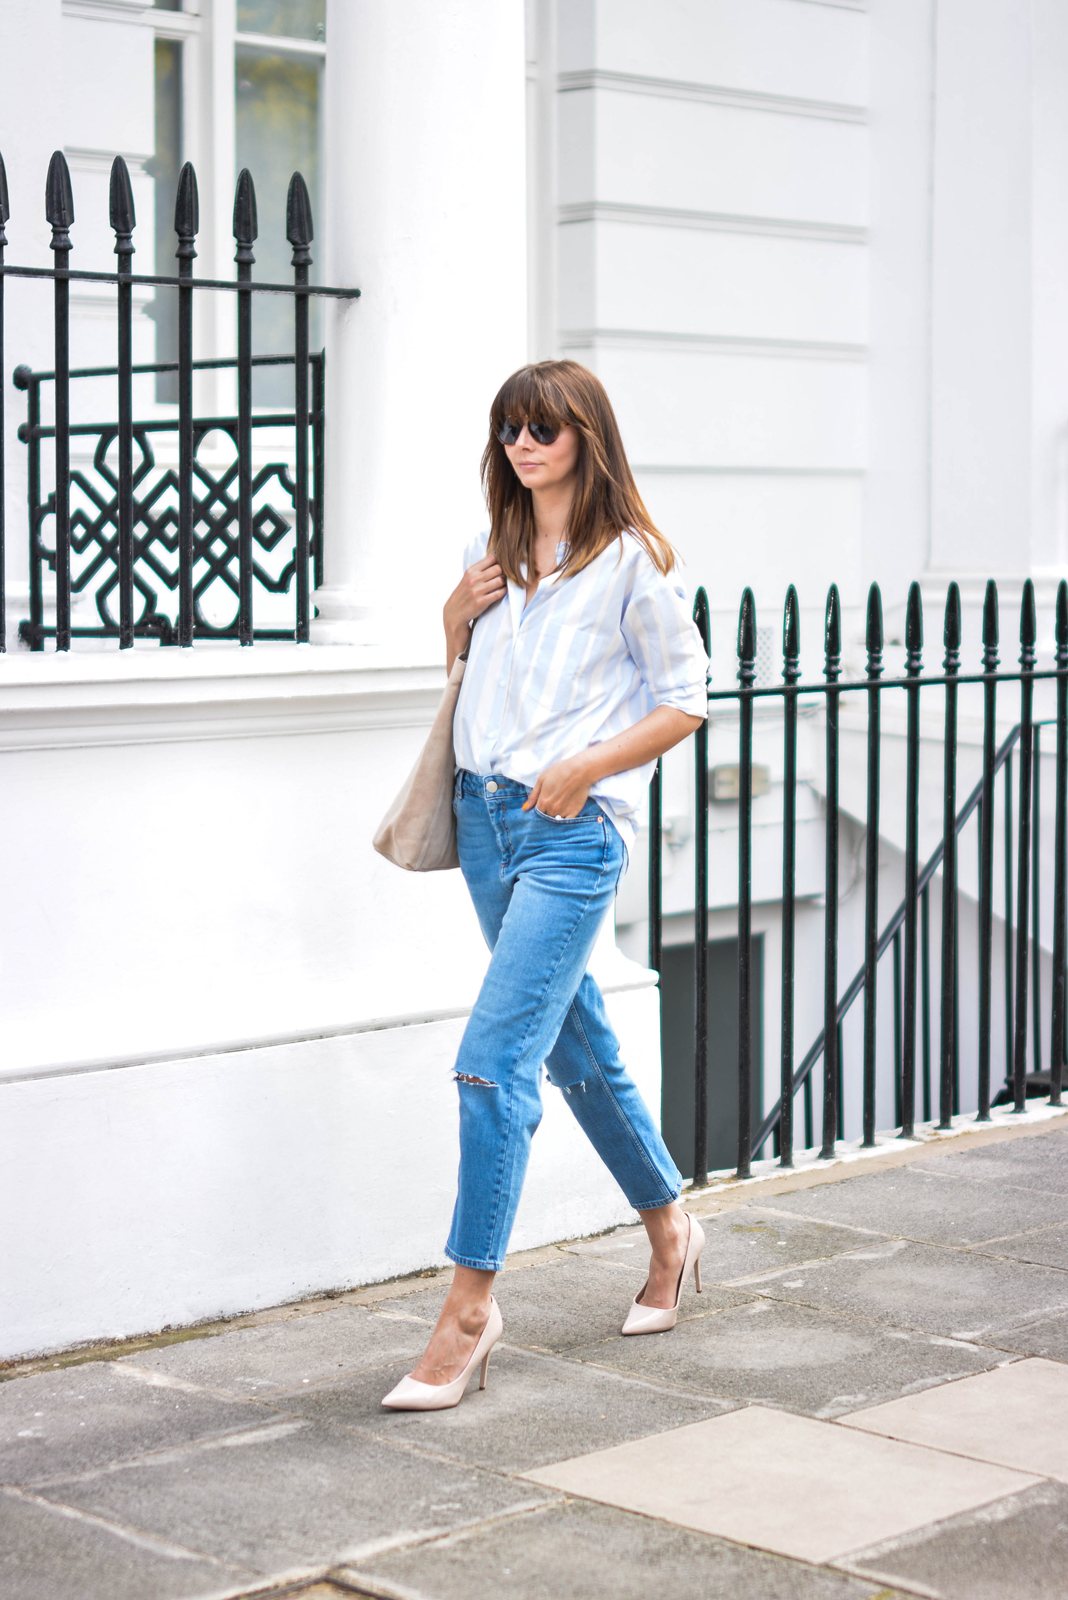 EJSTYLE - Emma Hill wears ASOS Thea girlfriend jeans with ripped knees, striped boyfriend shirt, leather suede nude shopper tote bag, nude patent pointed toe court shoes, aviator sunglasses, OOTD